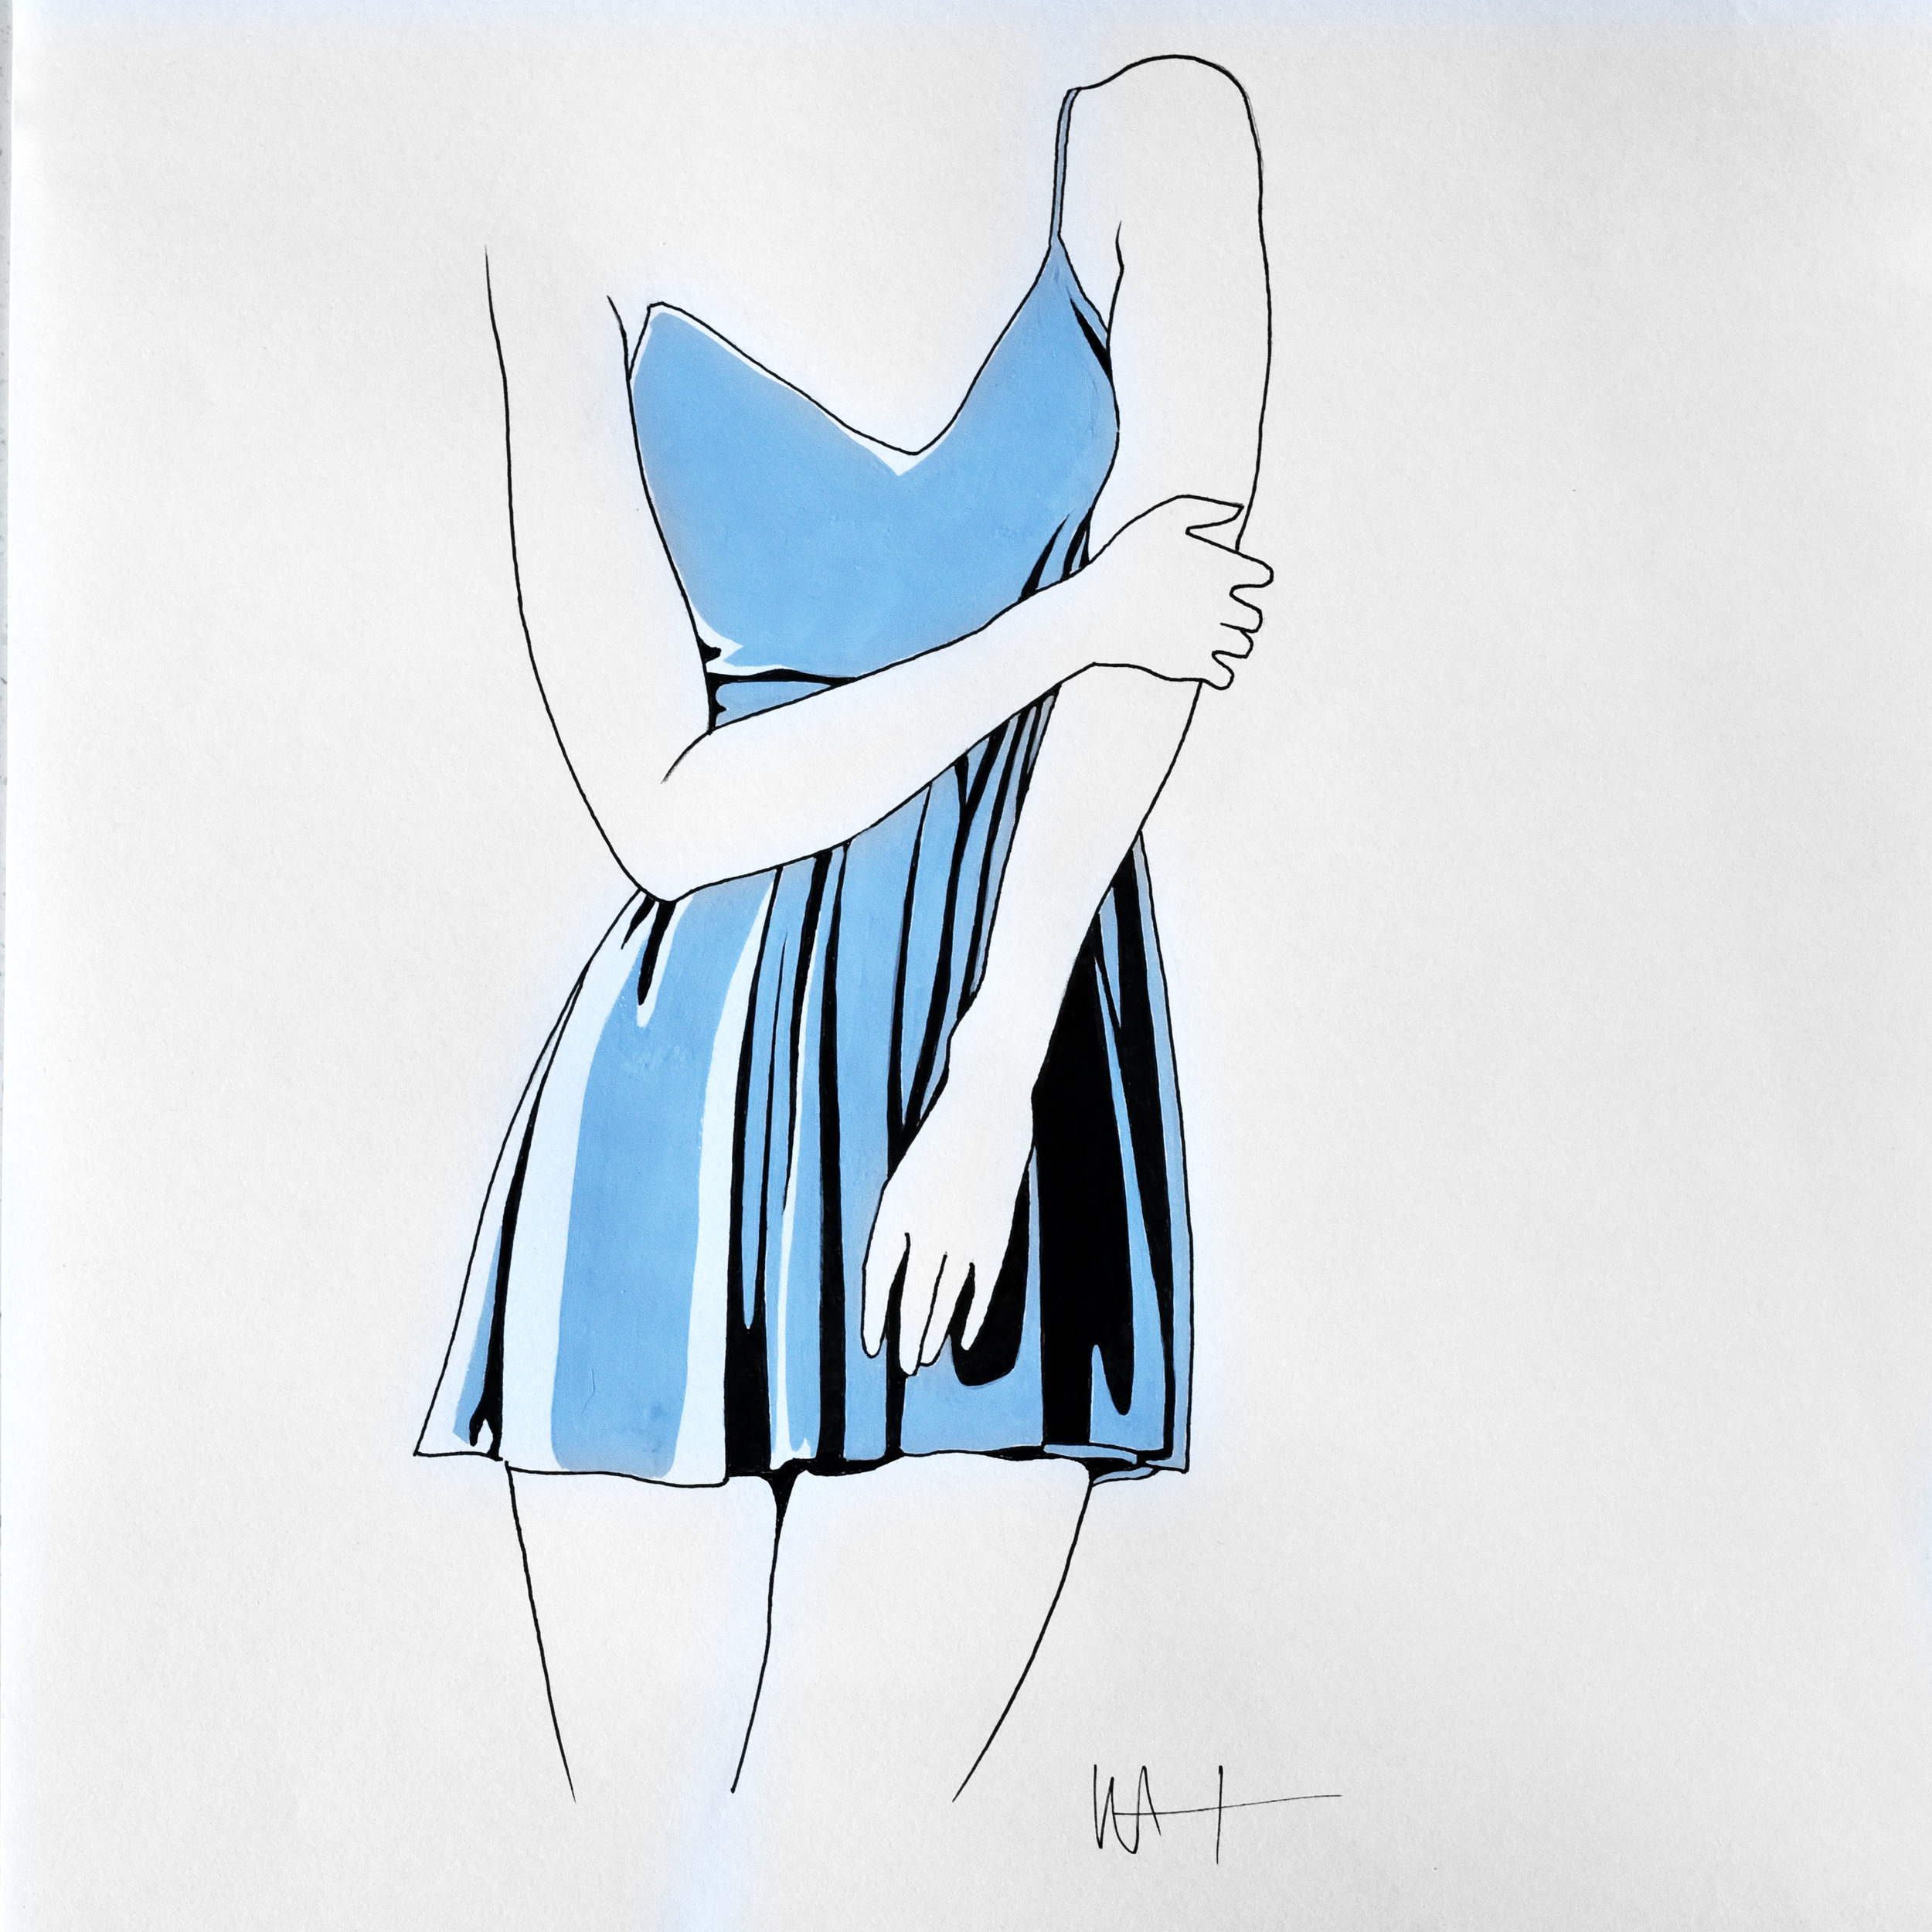 Minimal fashion illustration line drawing of a woman in a blue dress.